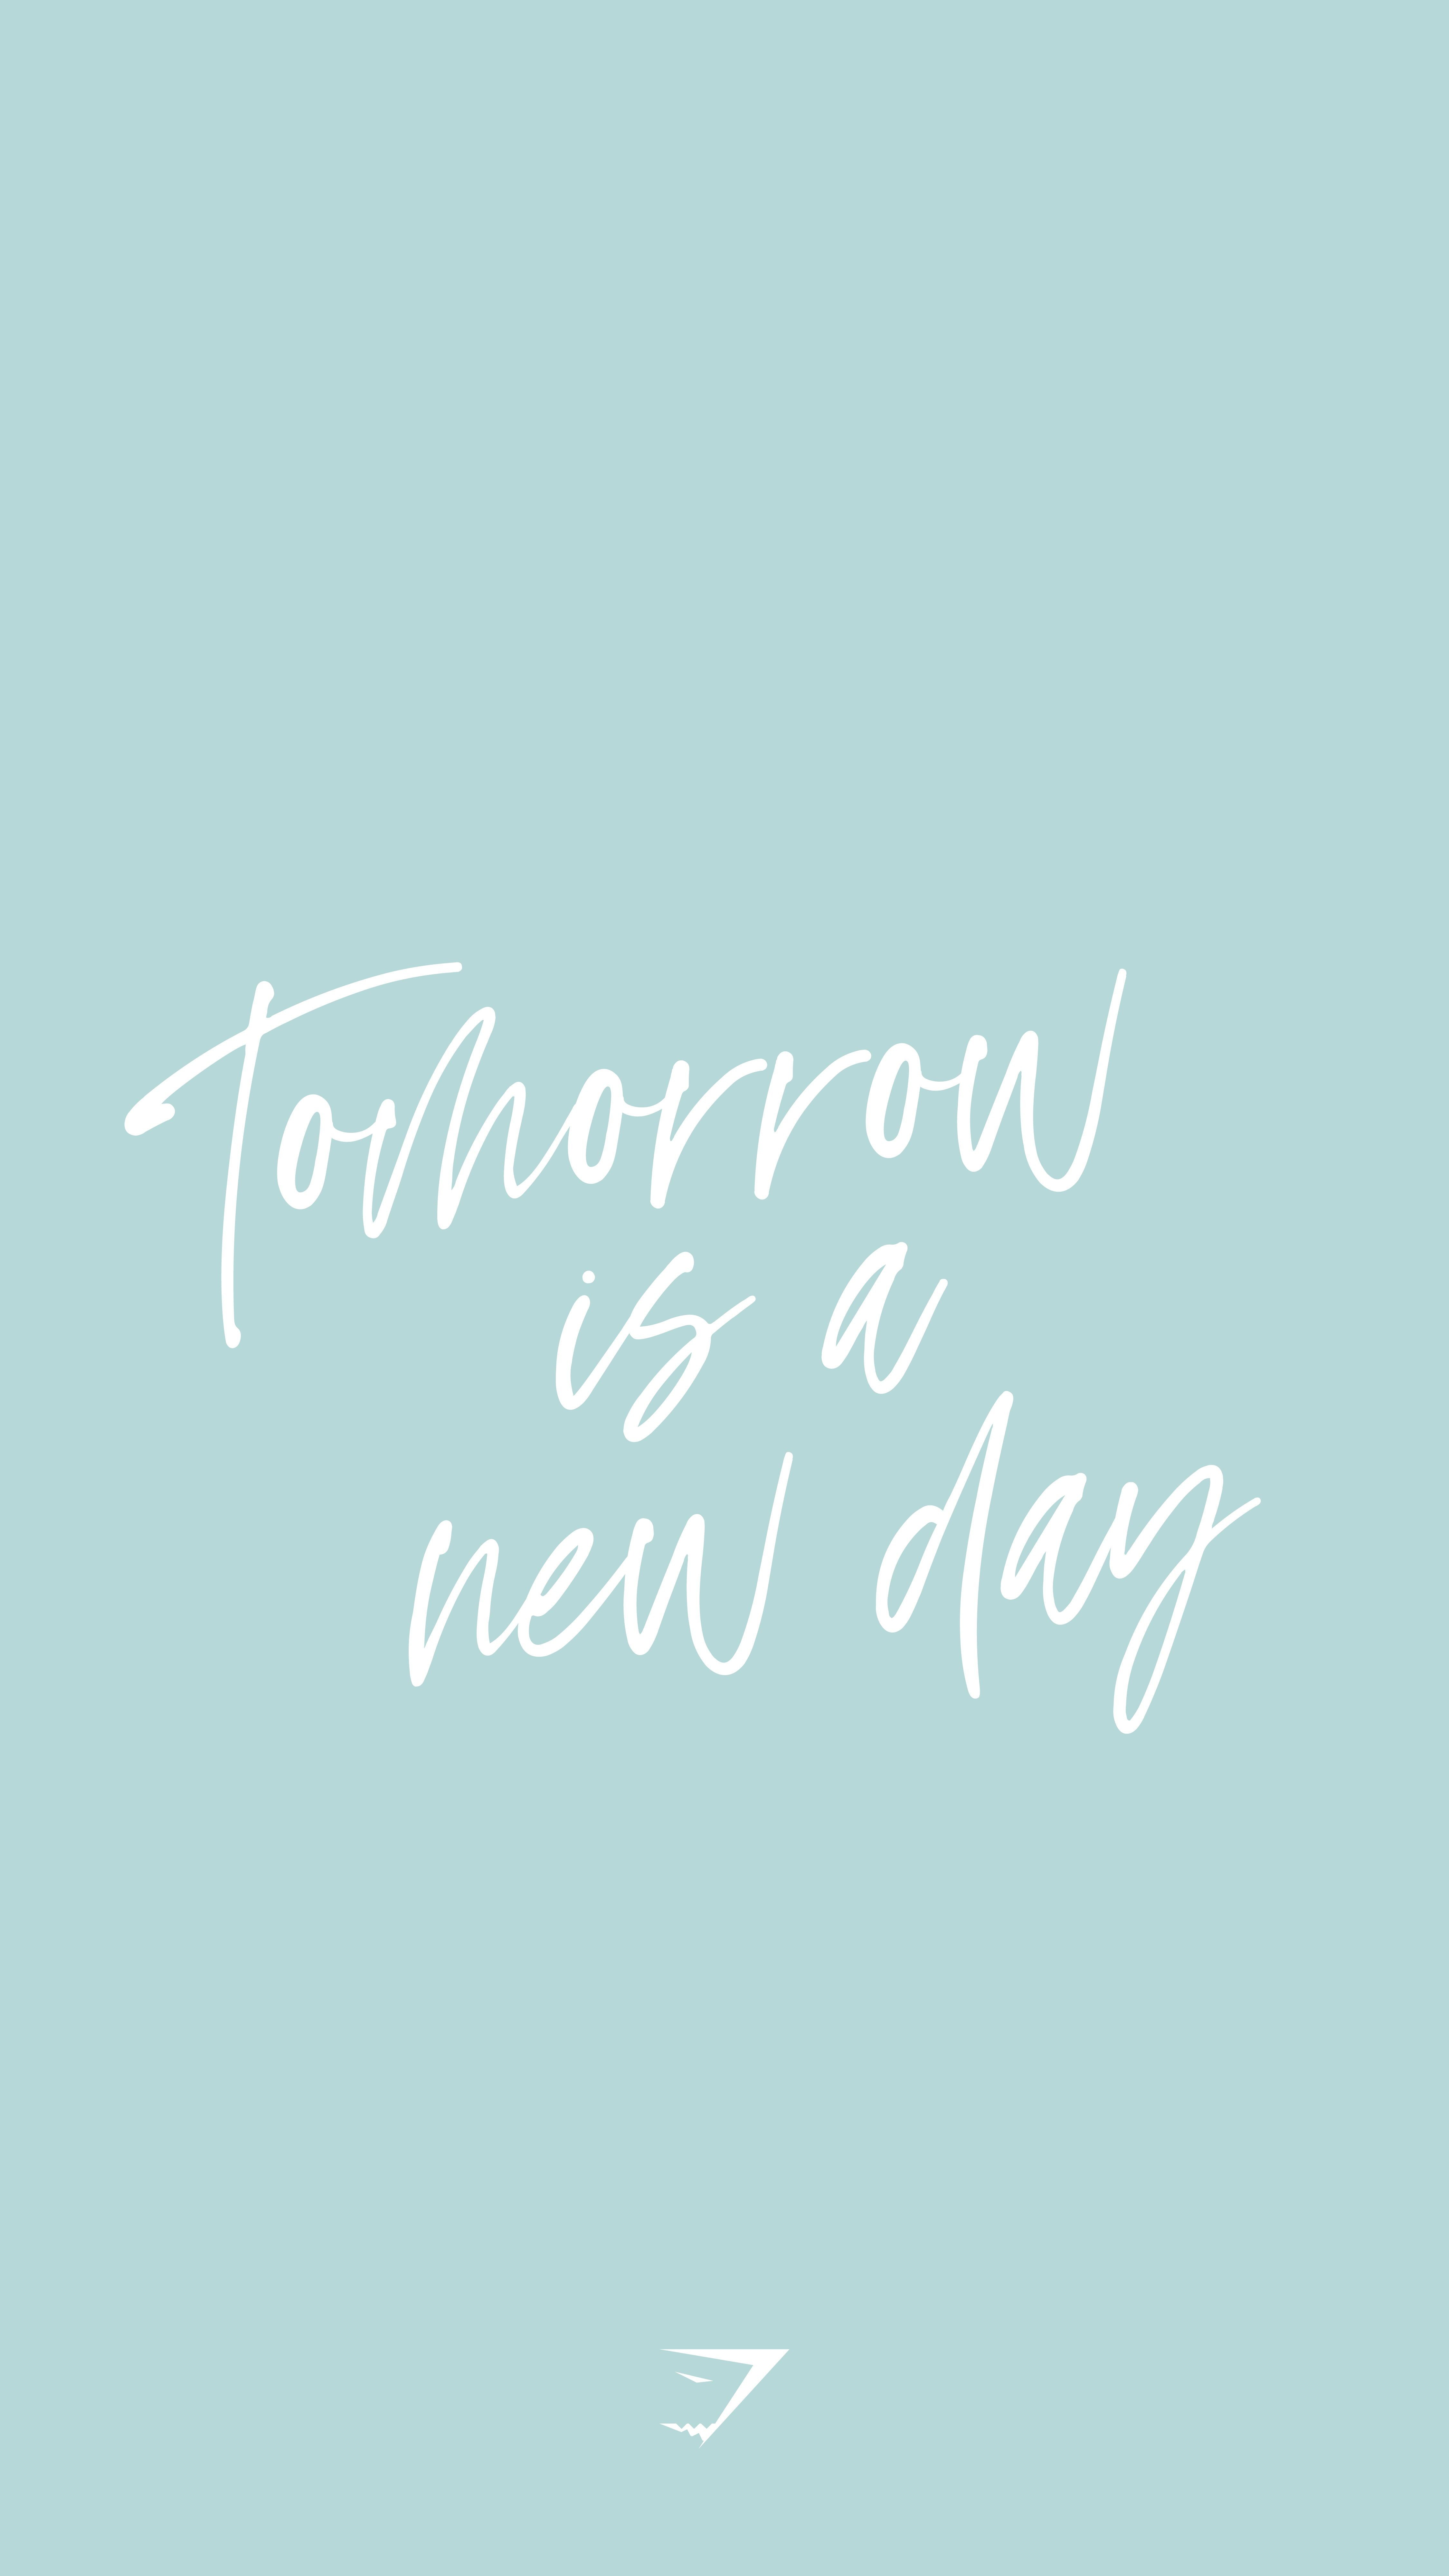 Tomorrow Is A New Day Save This To Your Board For A Happy Reminder Gymshark Quotes Inspirationalquotes Wise Words Quotes New Day Quotes Empowering Quotes